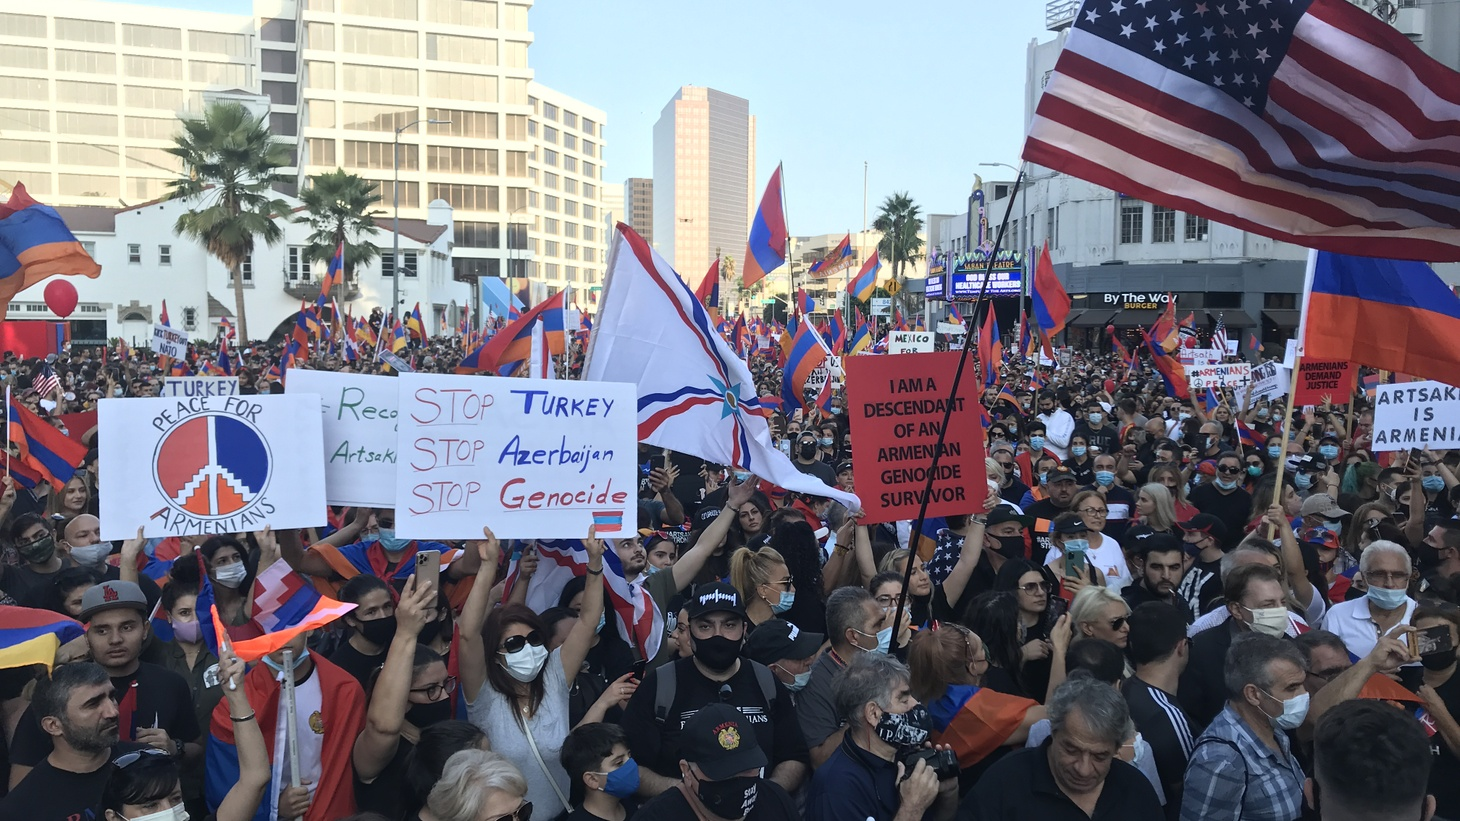 Tens of thousands of pro-Armenia demonstrators crowding Wilshire Boulevard in Beverly Hills near the Turkish consulate on October 11, 2020.